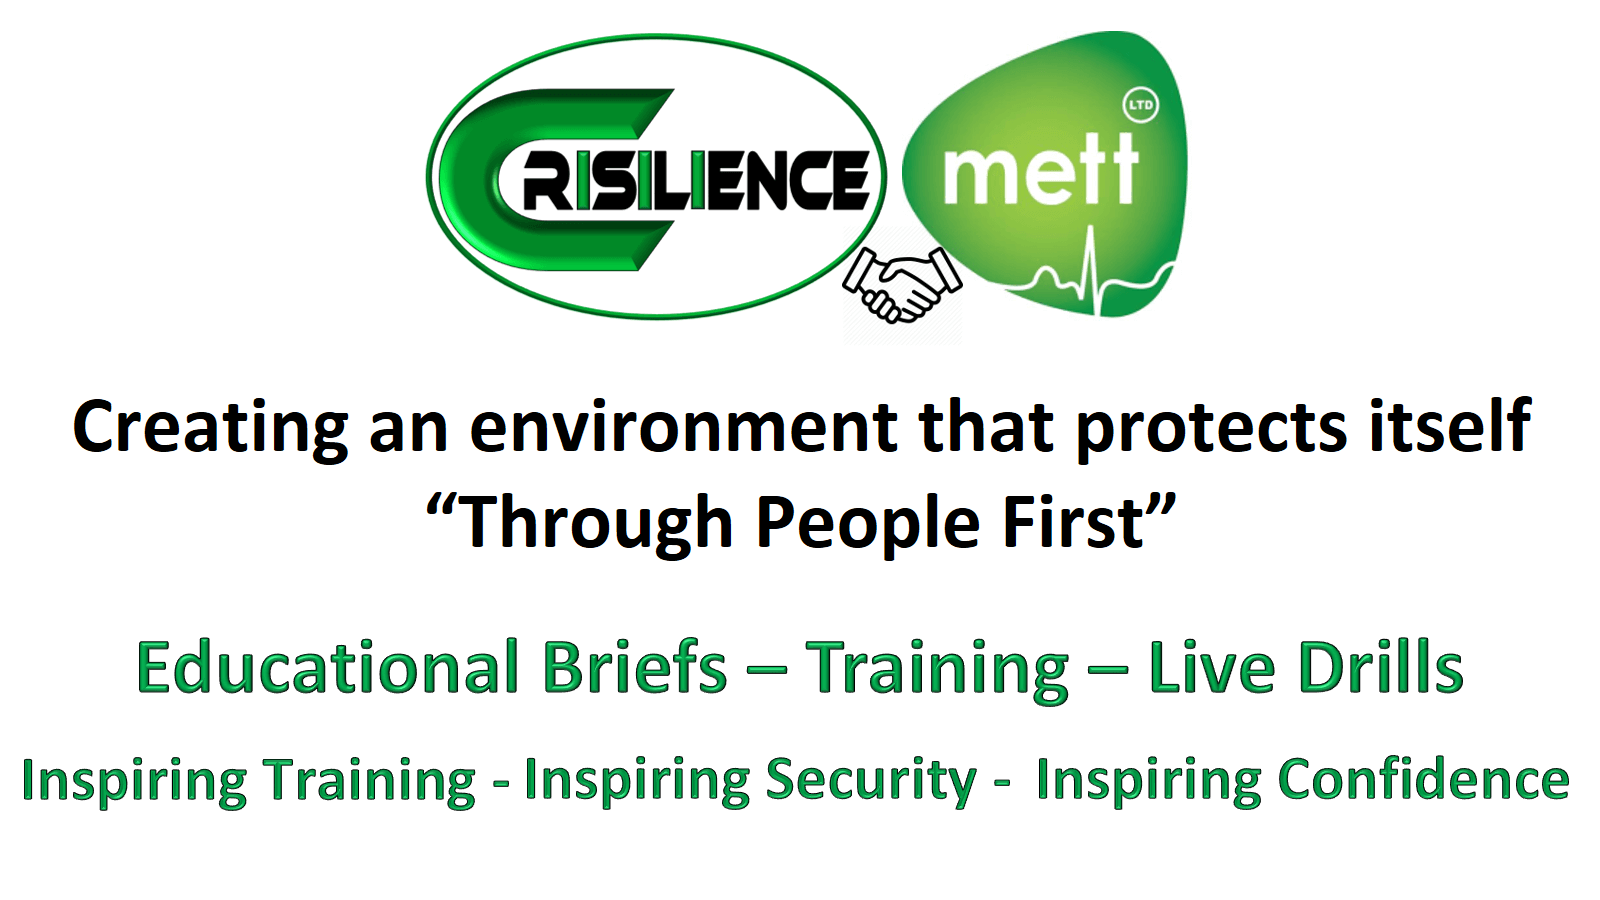 CIMAT slide 19 Creating an environment that protects itself through people first